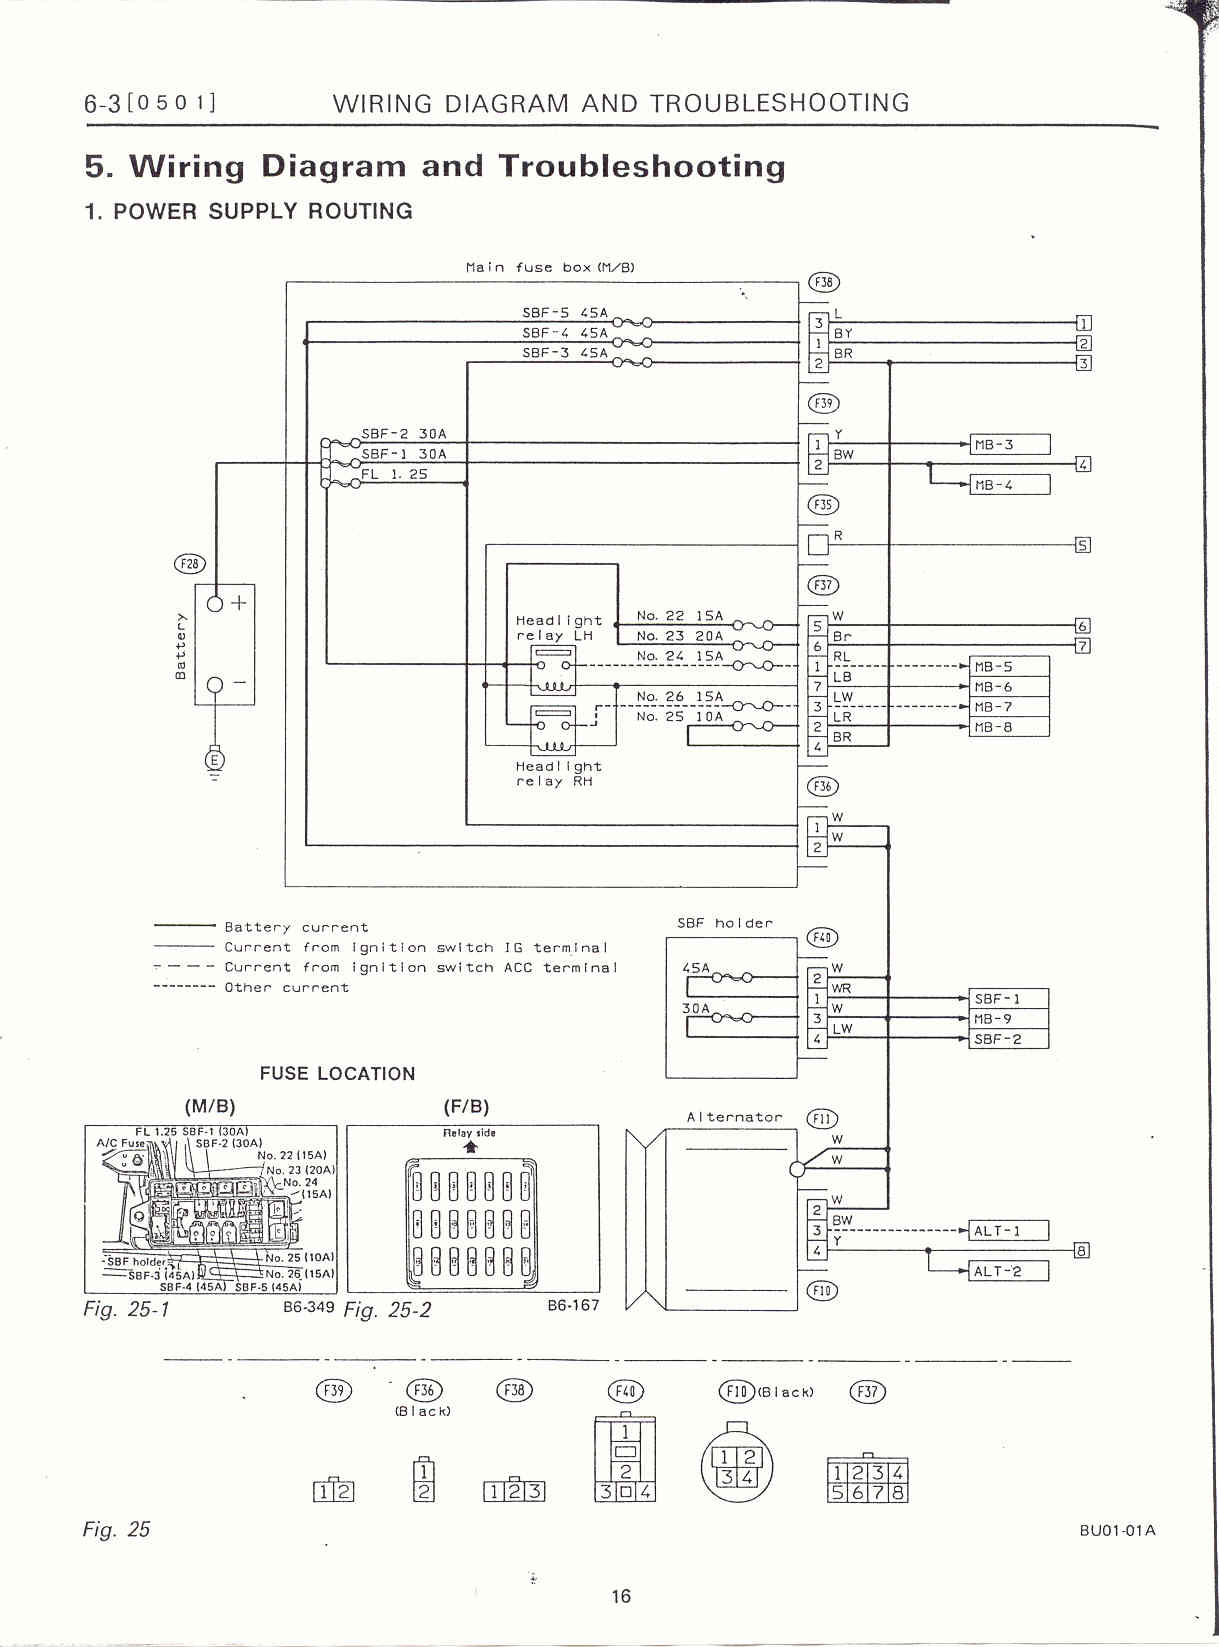 surrealmirage subaru legacy swap electrical info & notes power supply  routing page 1